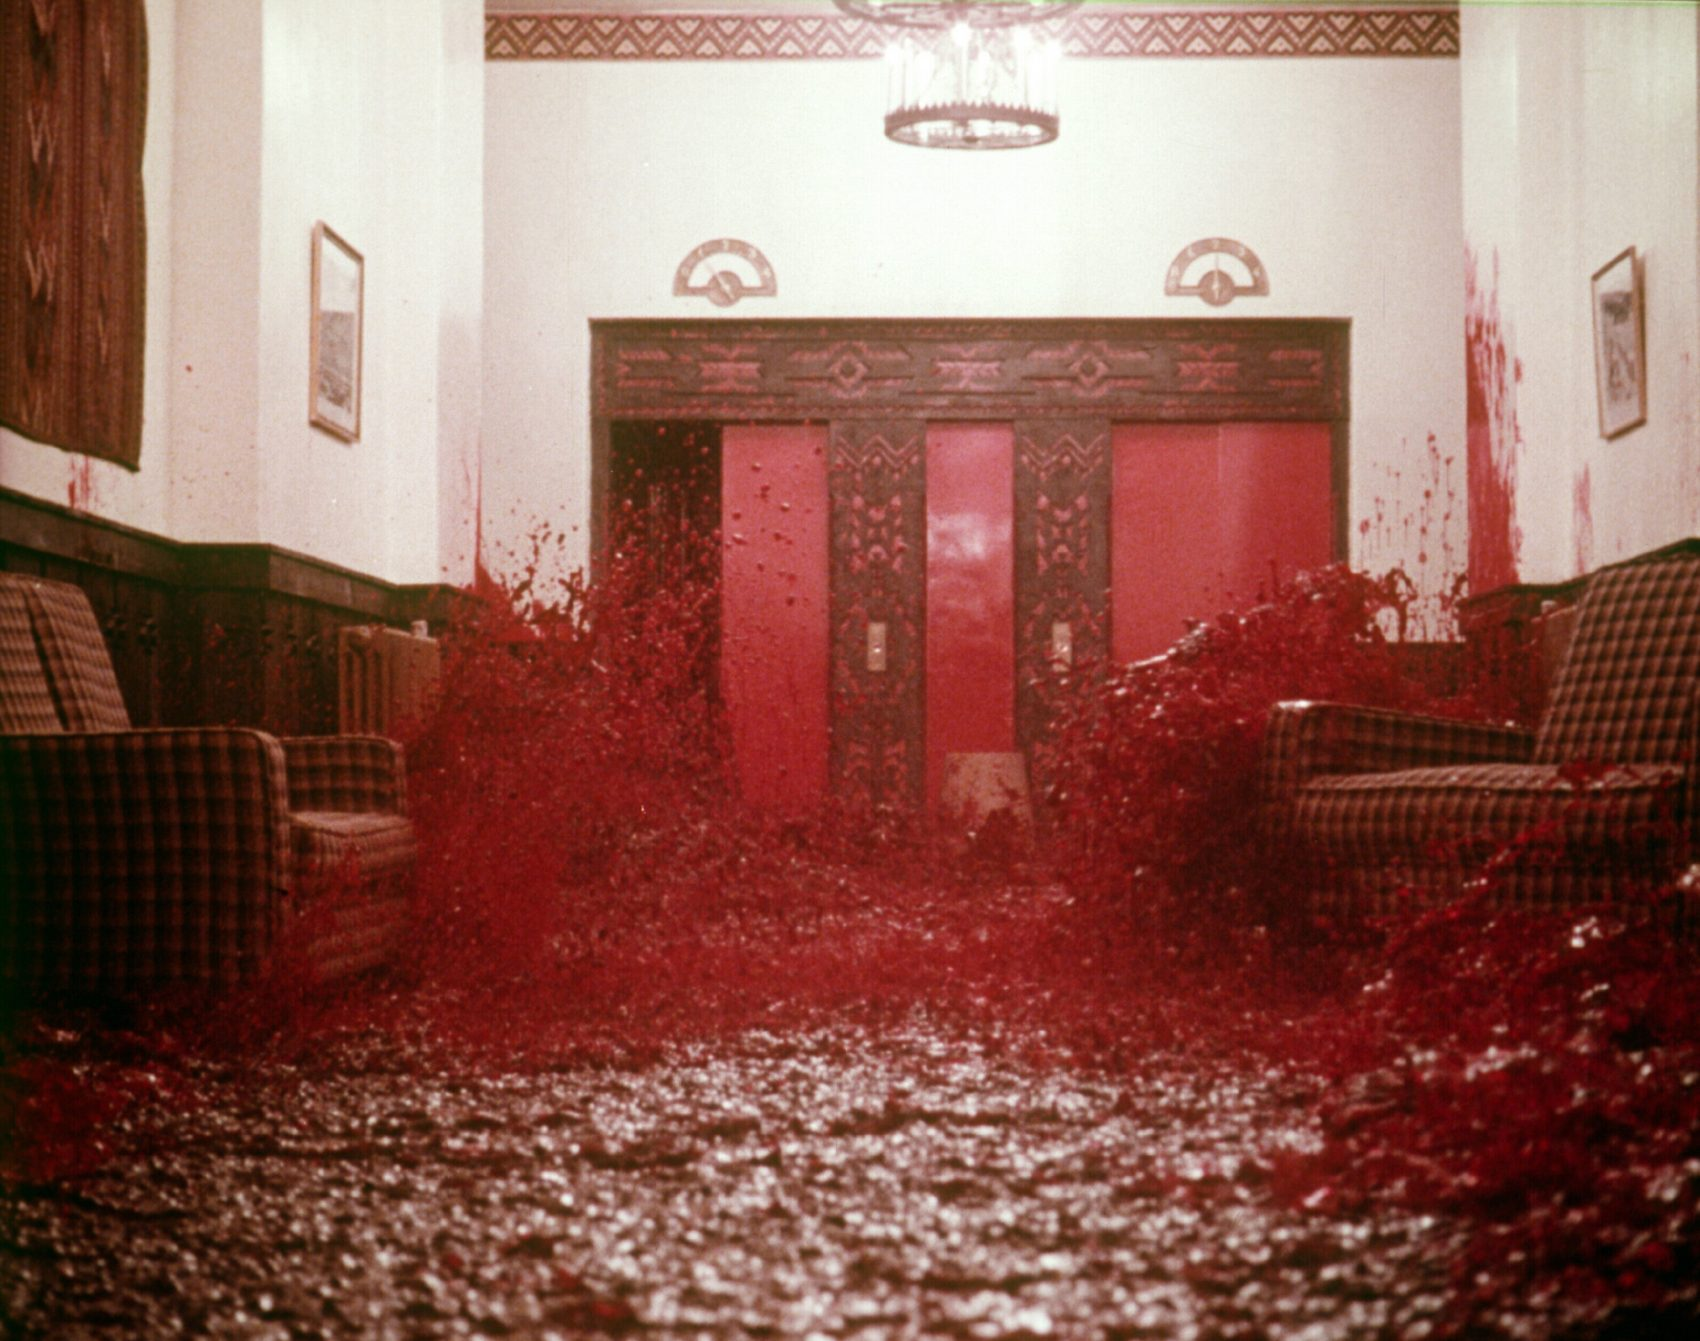 Blood pouring from the elevator